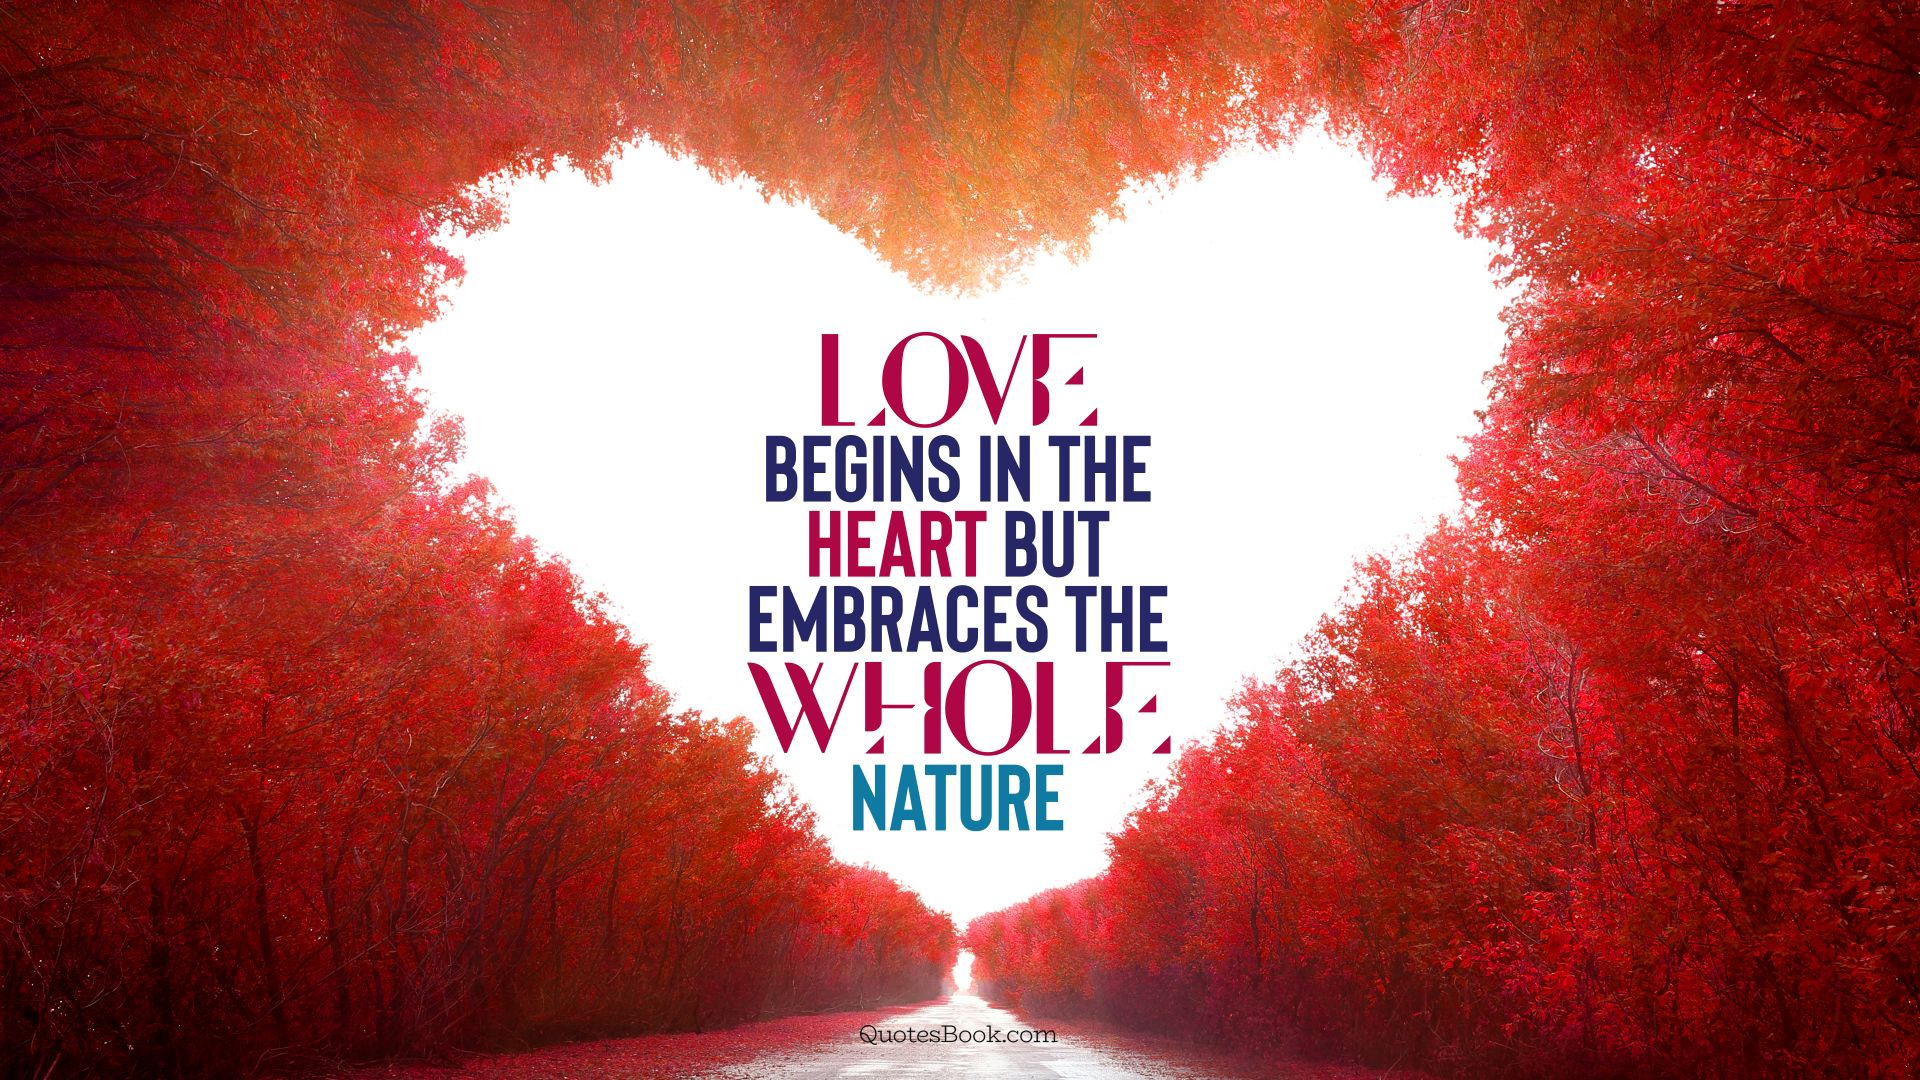 Love begins in the heart but embraces the whole nature. - Quote by QuotesBook